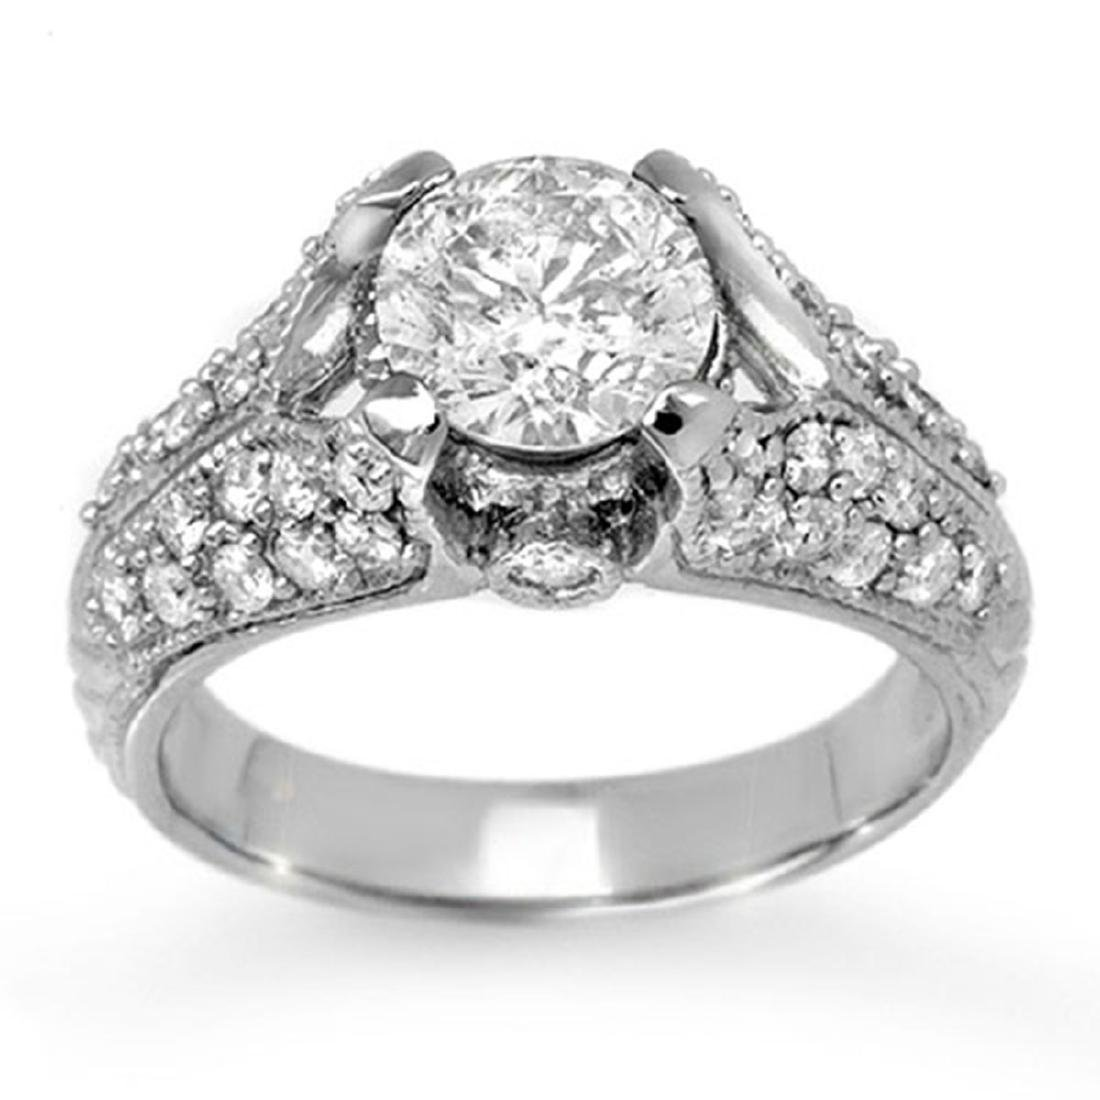 2.20 CTW Certified VS/SI Diamond Ring 14K White Gold -